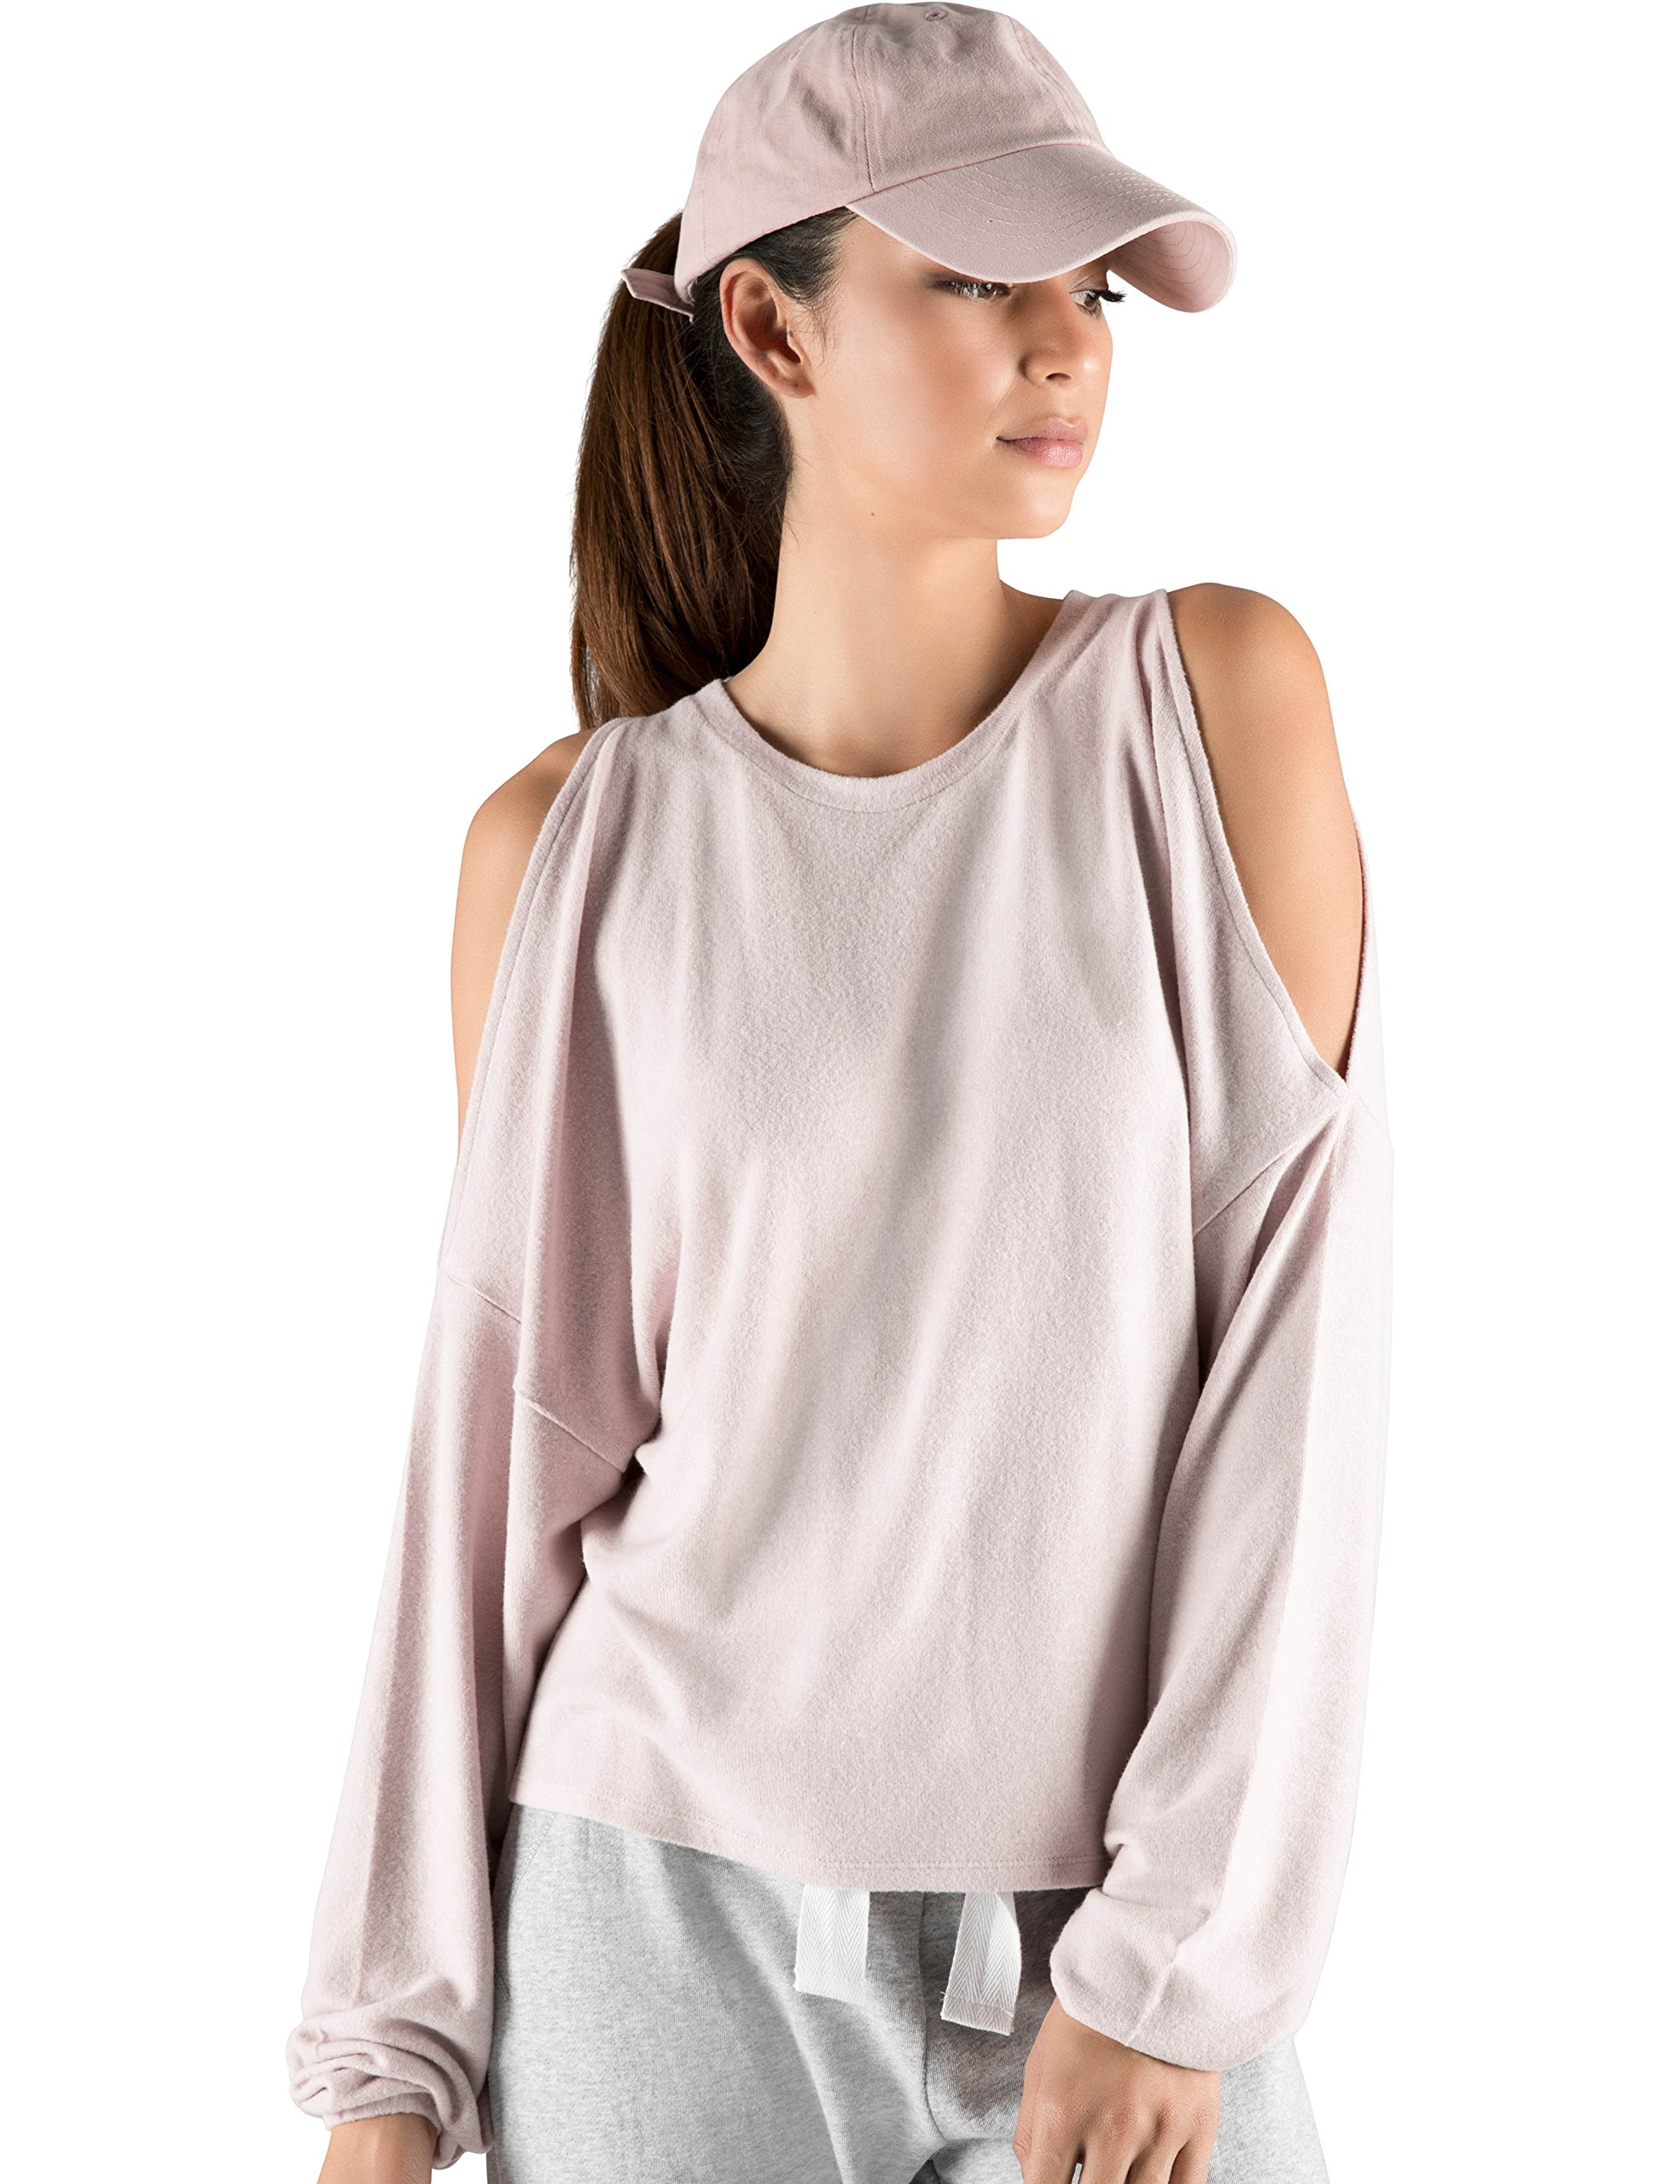 Rebel Canyon Young Women's Super Soft Brushed Jersey Long Sleeve Cold Shoulder Sweater Top with Cinched Sleeves X-Small Mauve